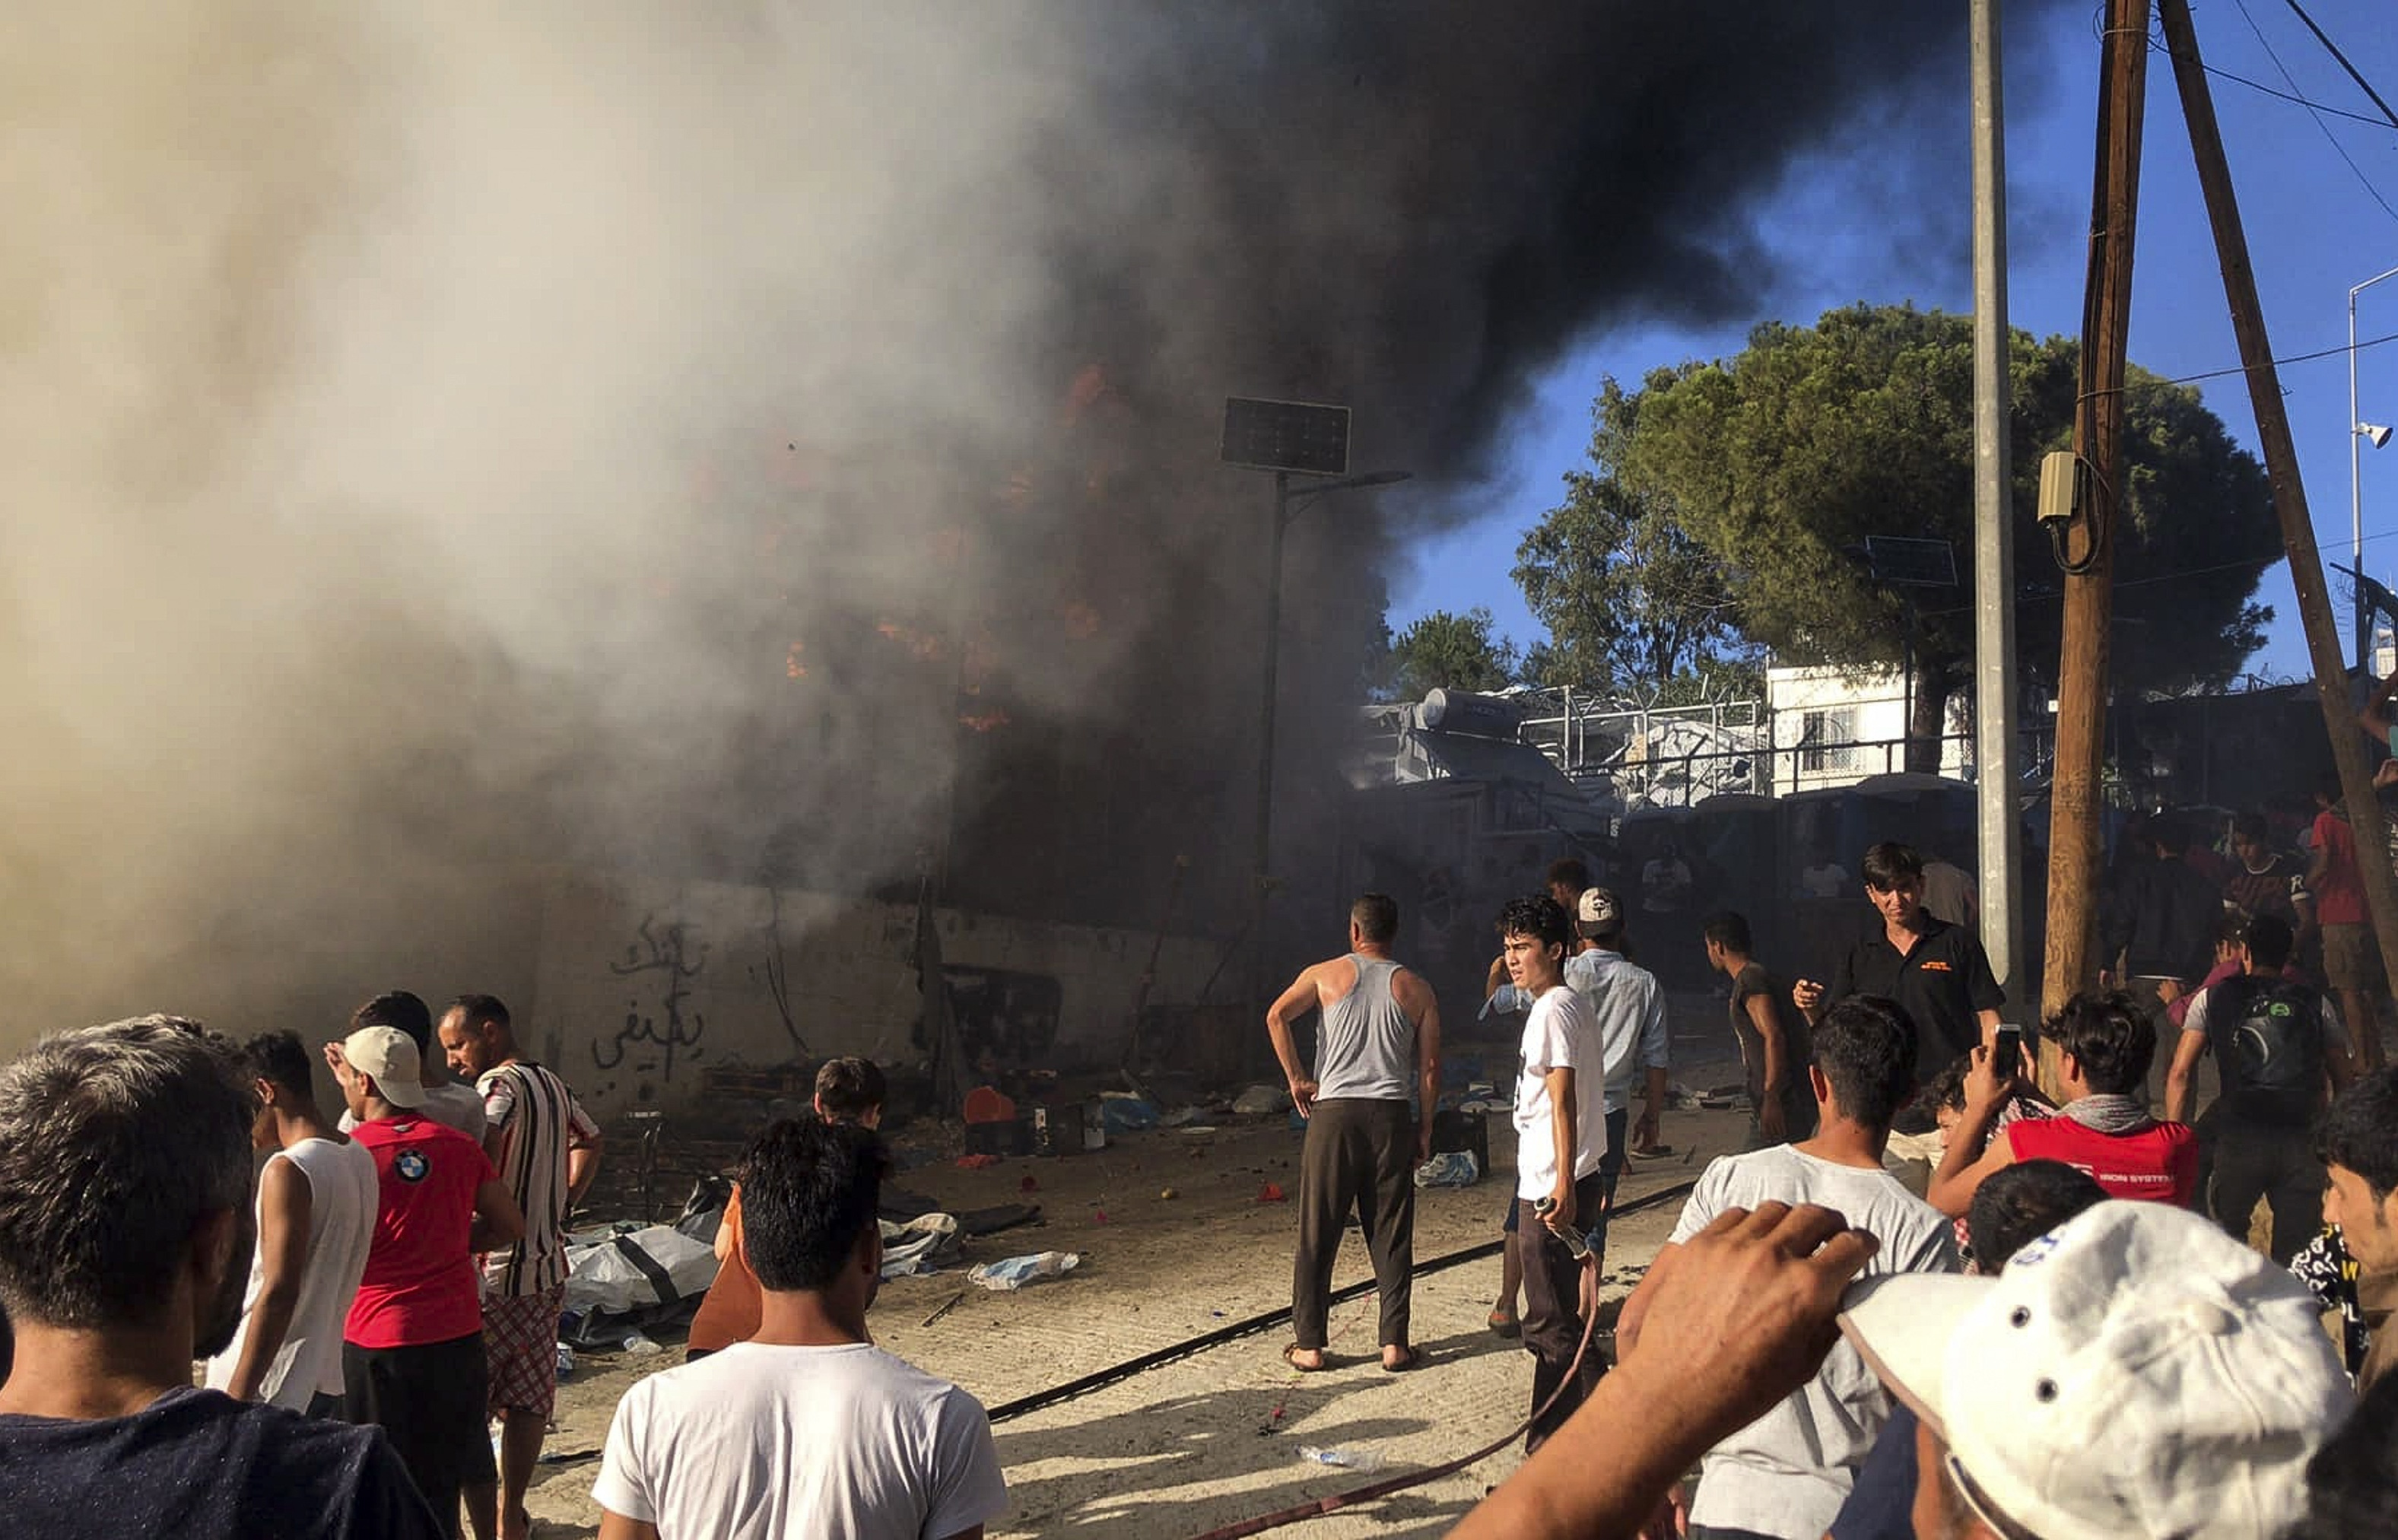 The fire at the Moria refugee camp